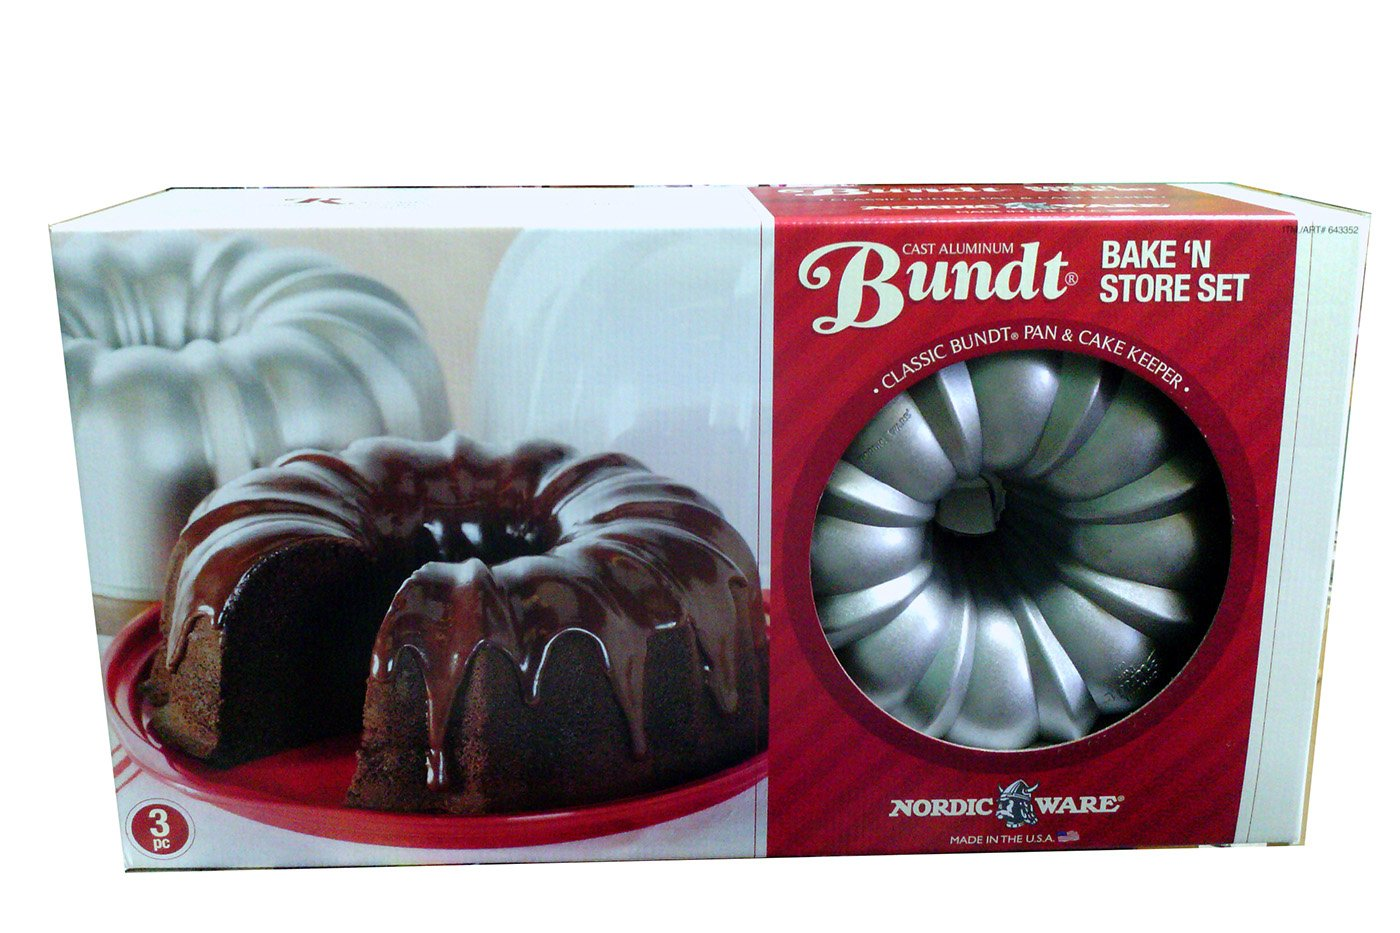 Nordic Ware Cast Aluminum Bundt Bake and Store 3pc Set